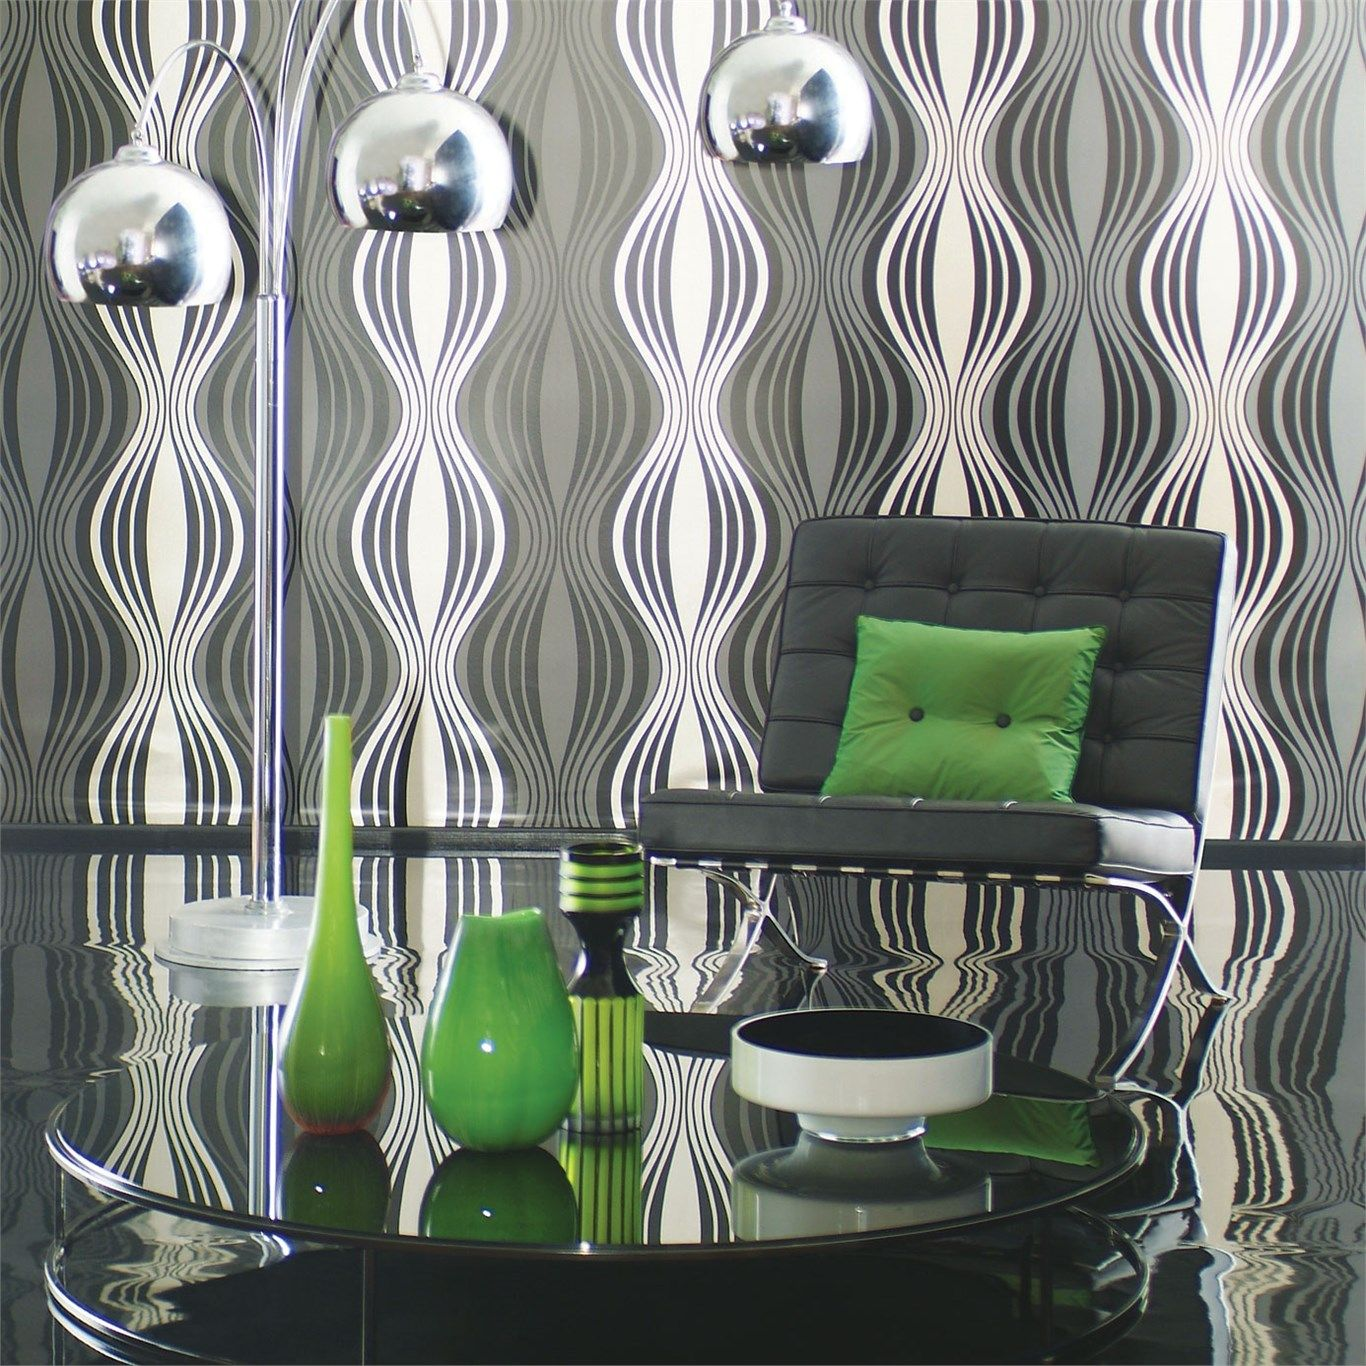 Harlequin - Designer Fabrics and Wallcoverings | Products | British ...